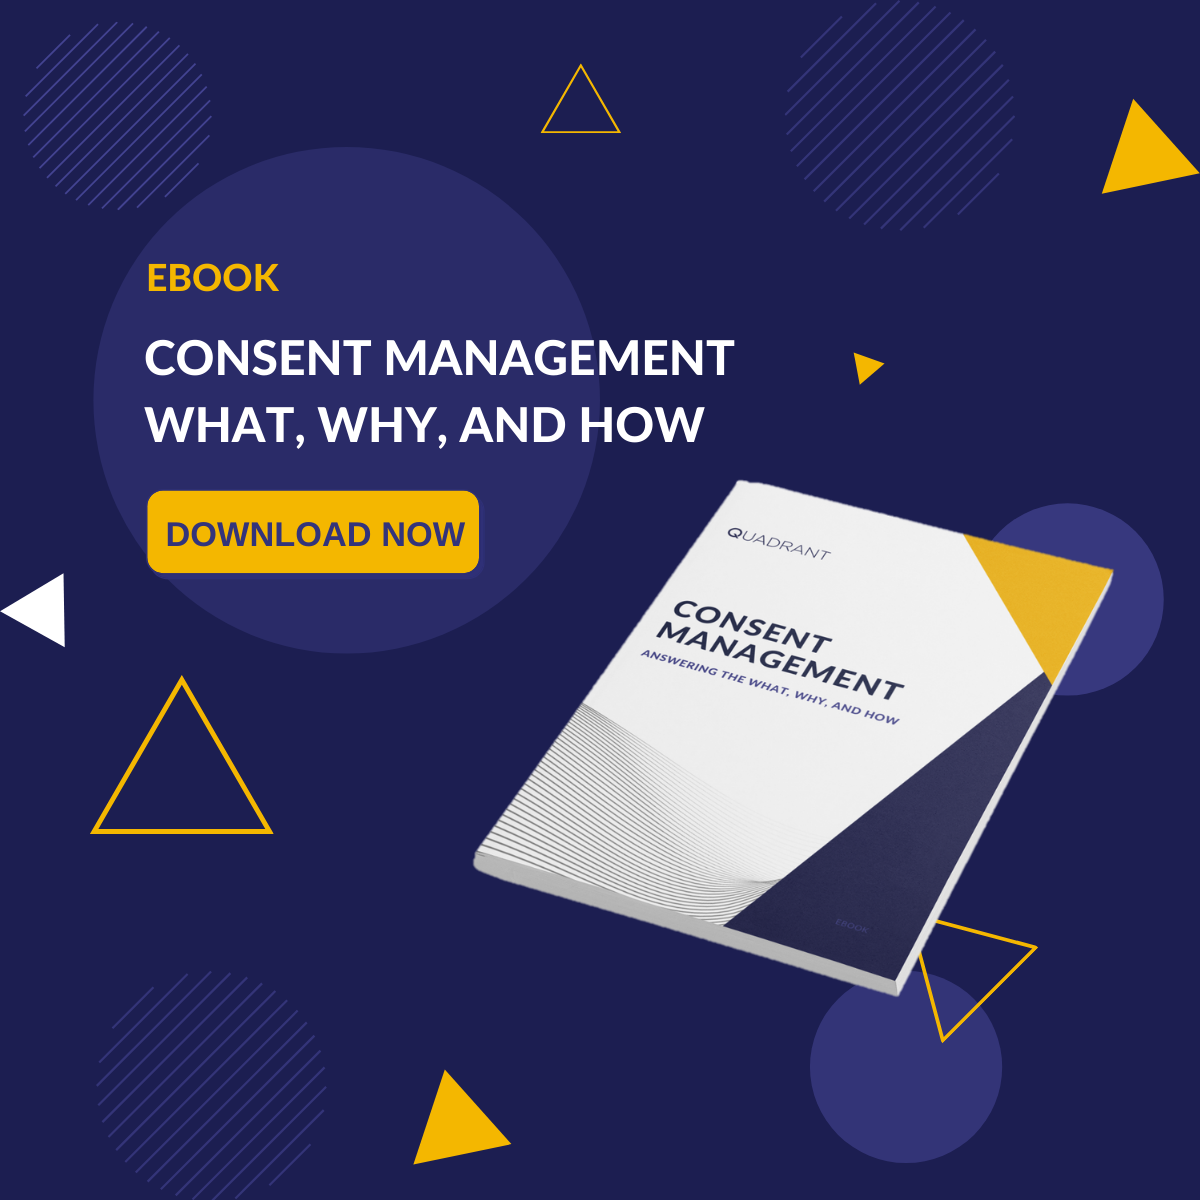 Consent Management - What, Why, and How-1